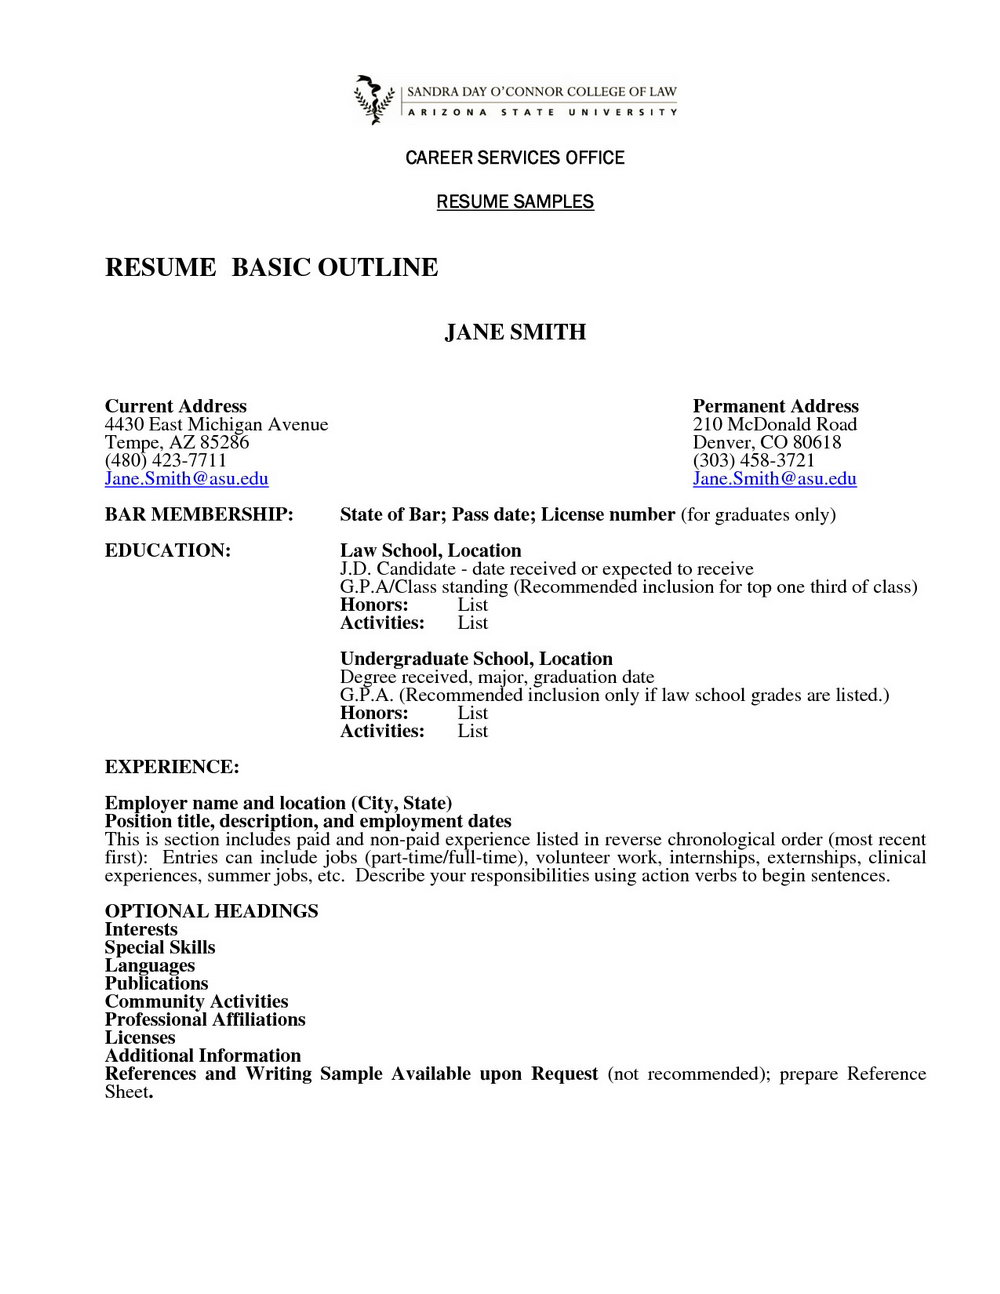 Resume Example Resume Template Outline Resume Outline Template W